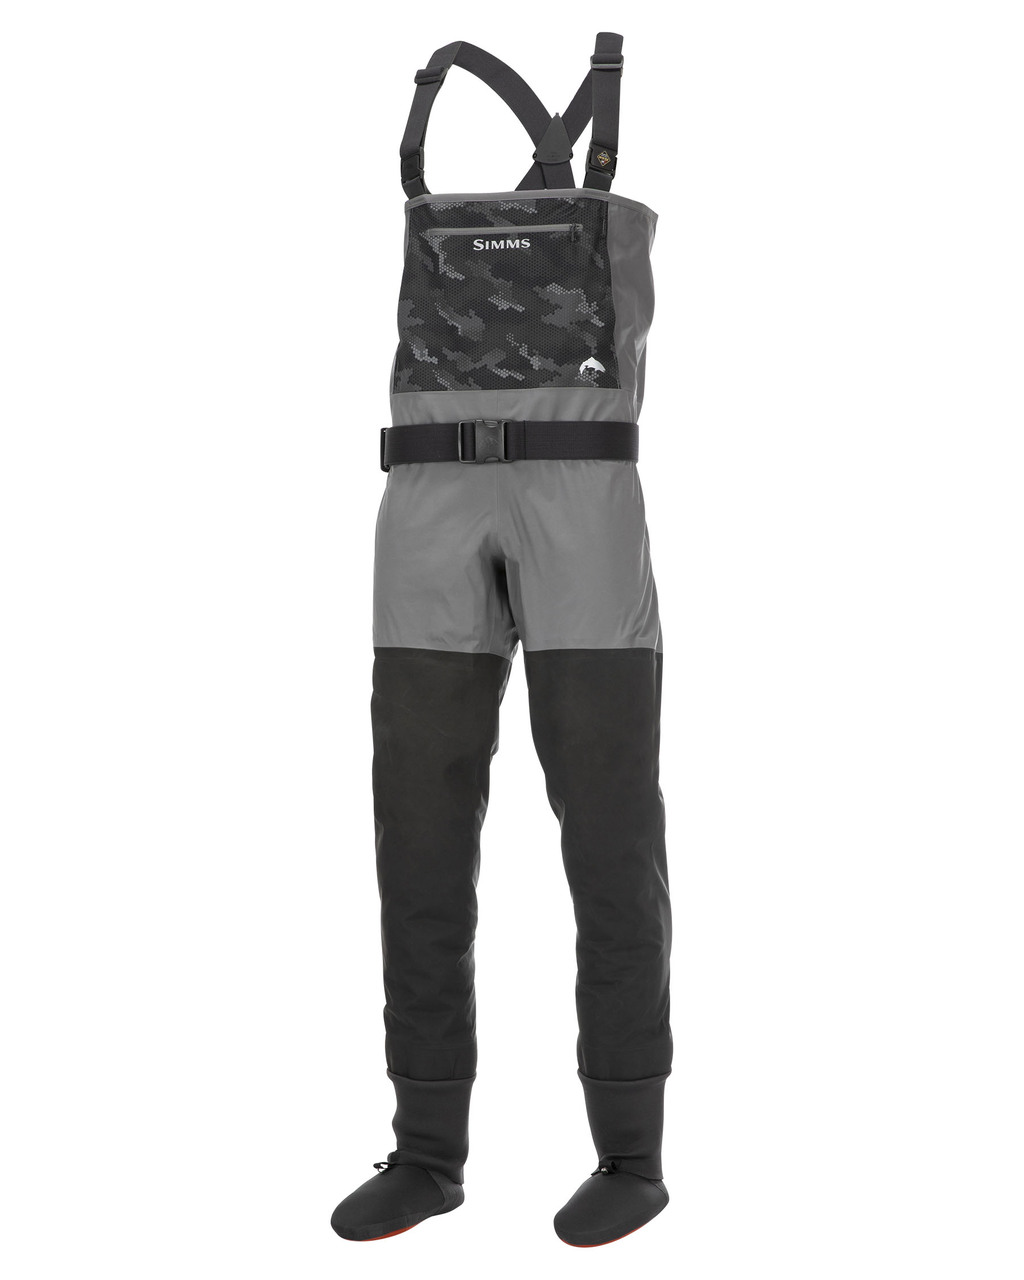 Simms Classic Guide Stockingfoot Wader